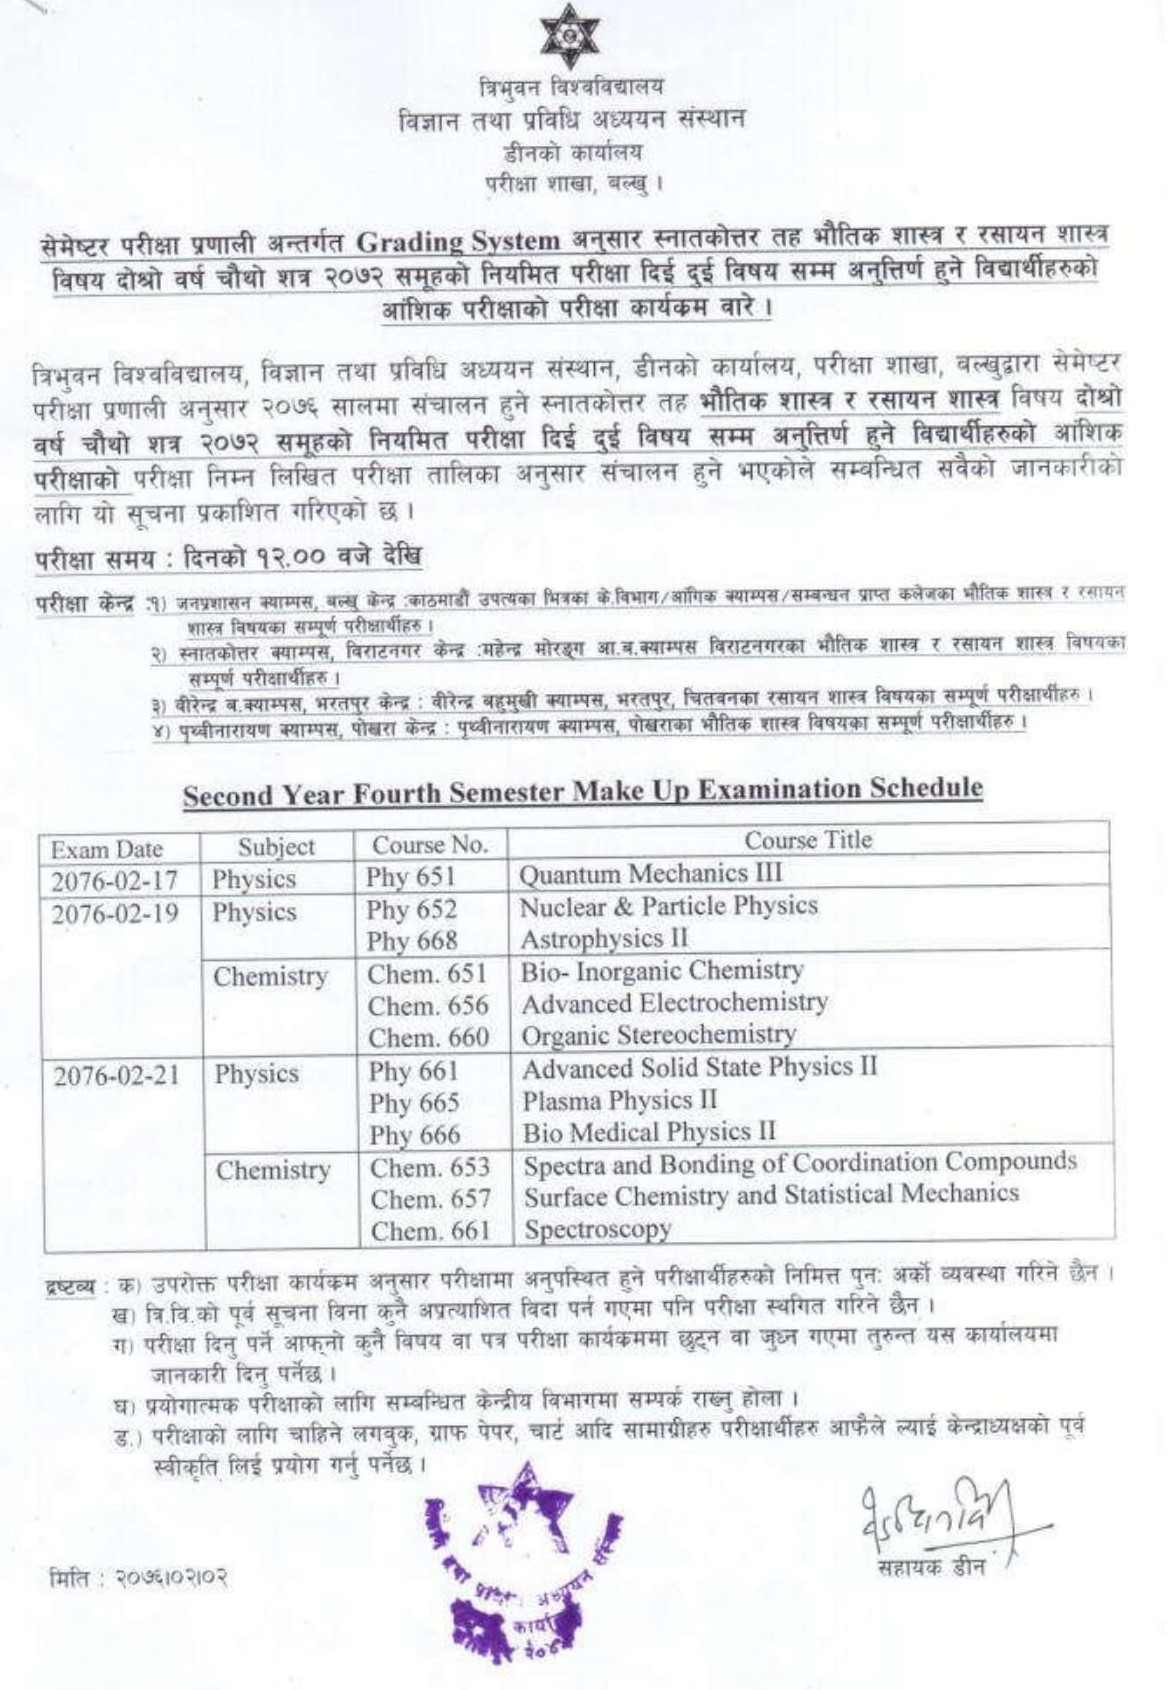 Make Up Exam Routine For M.Sc. Physics And Chemistry Fourth Semester TU 1